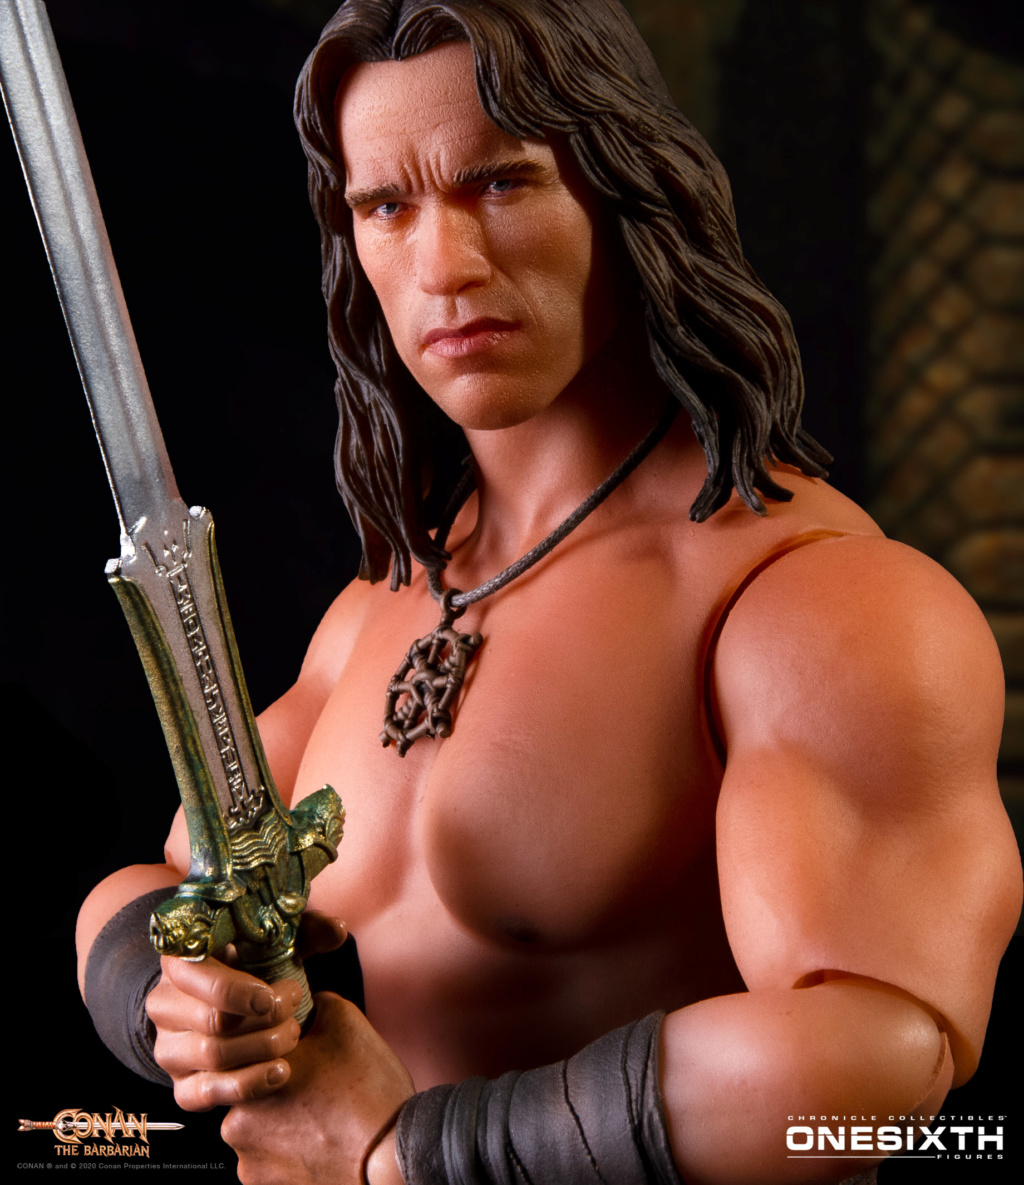 NEW PRODUCT: Chronicle Collectibles: OneSixth Conan the Barbarian Figure Chroni15